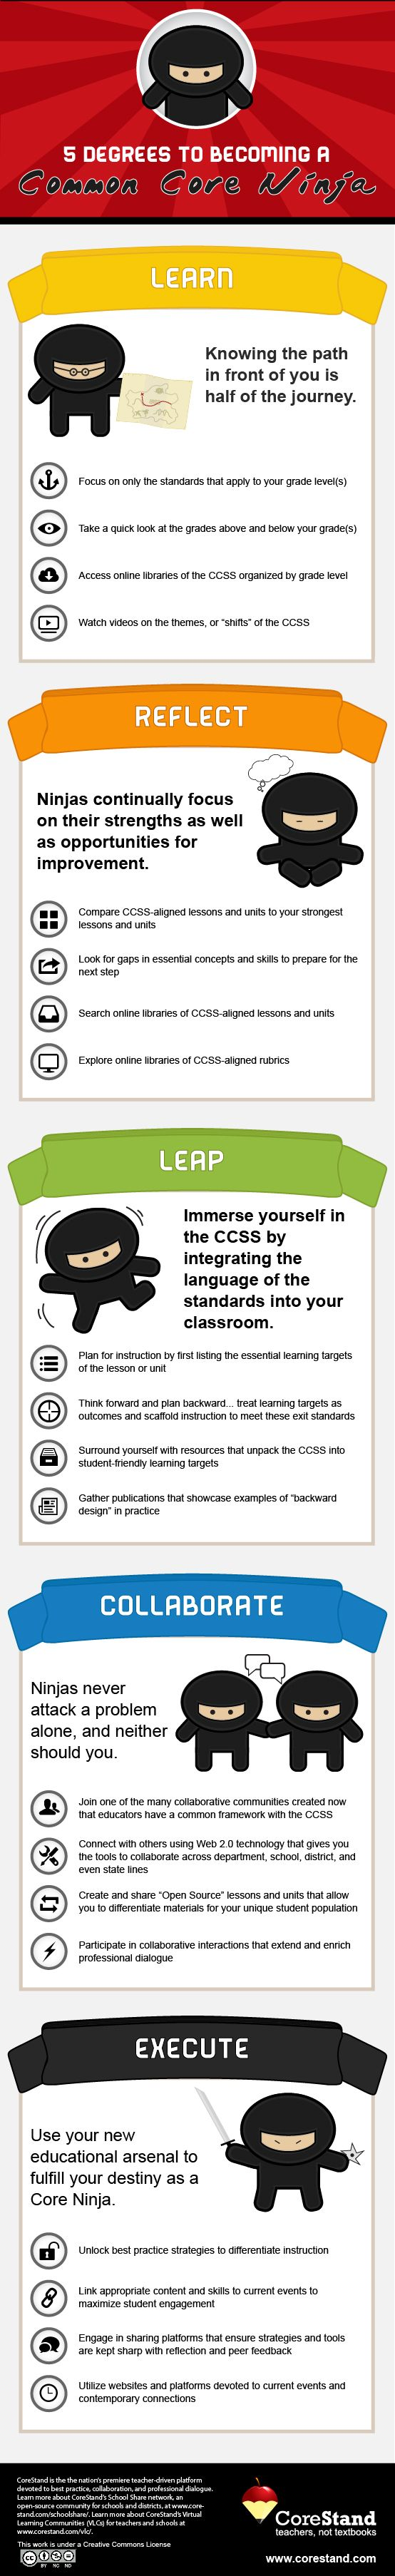 Learn to be a Common Core Ninja and how to address common core standards by using Blended Learning in the CTE classroom. from http://blog.aeseducation.com/2013/05/addressing-common-core-cte-standards-through-blended-learning/ #CommonCore #Education #BlendedLearning